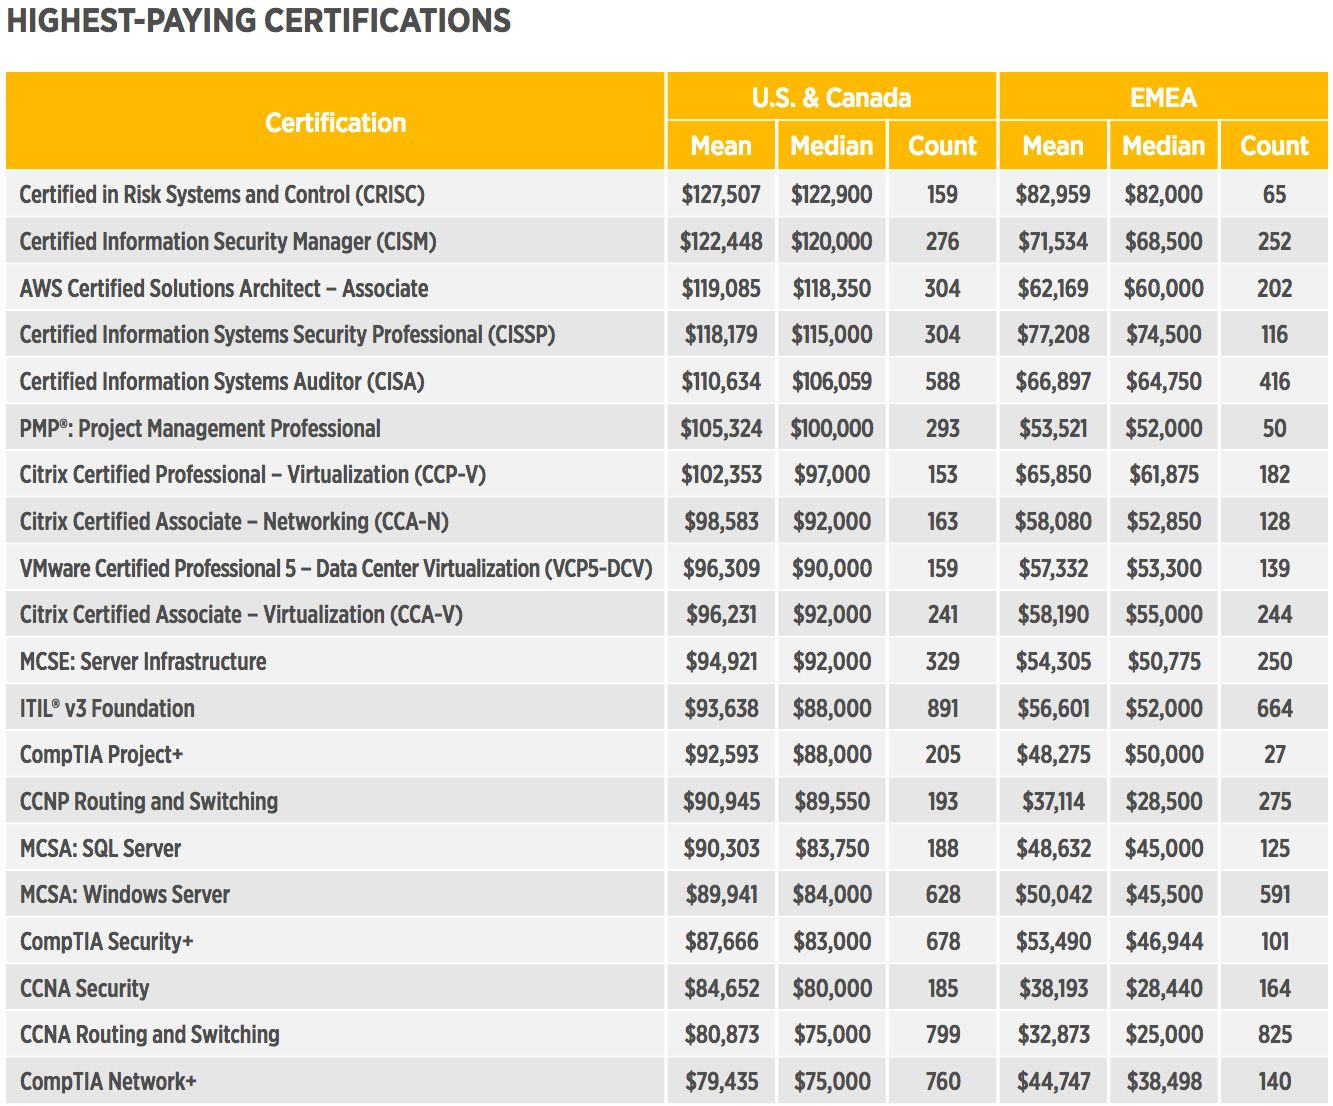 Highest paying certifications, skills in demand revealed